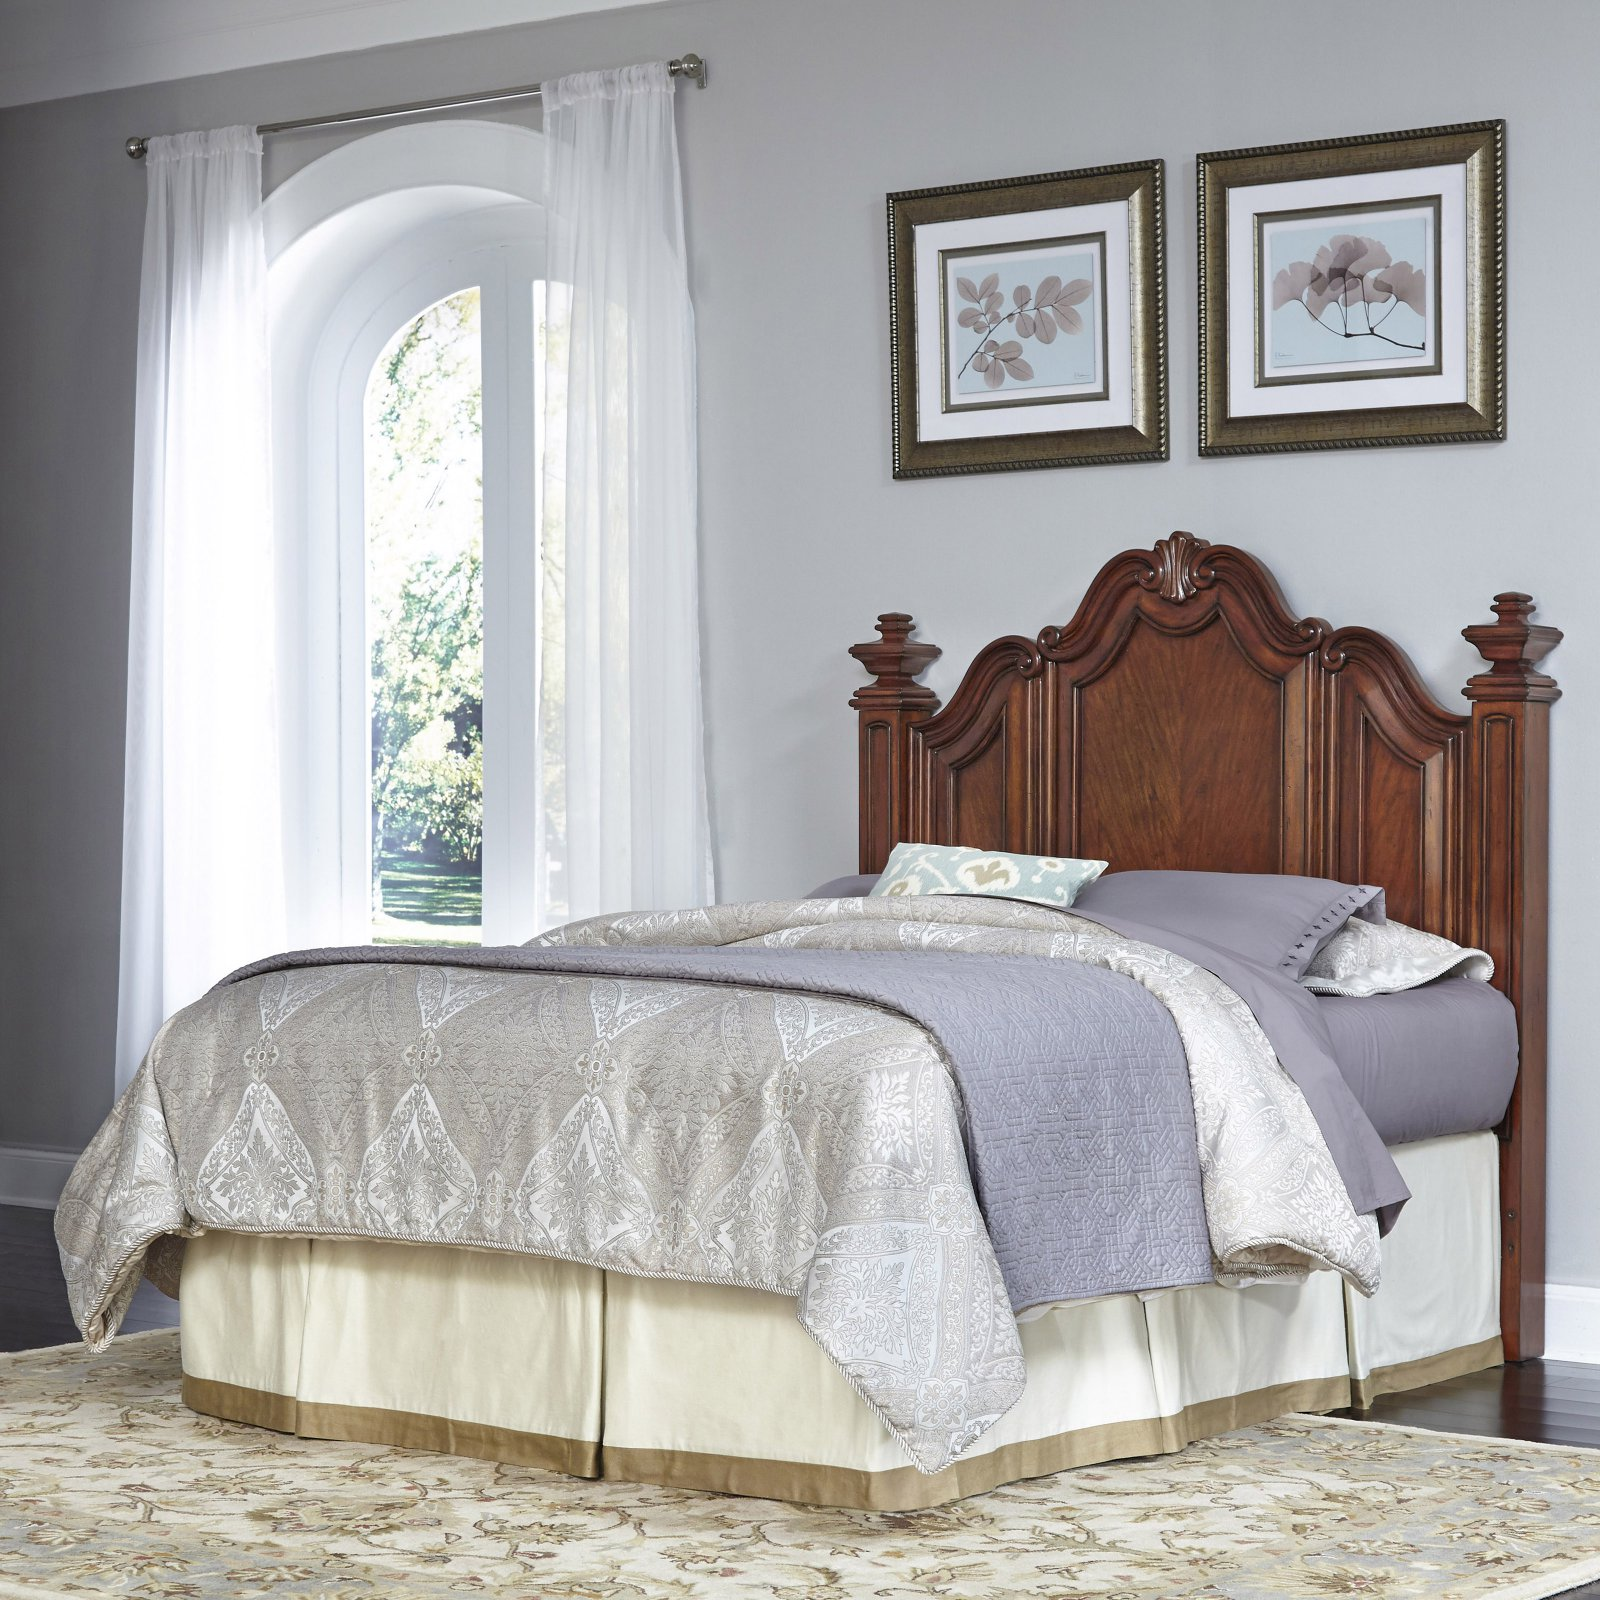 Home Styles Santiago King/California King Headboard